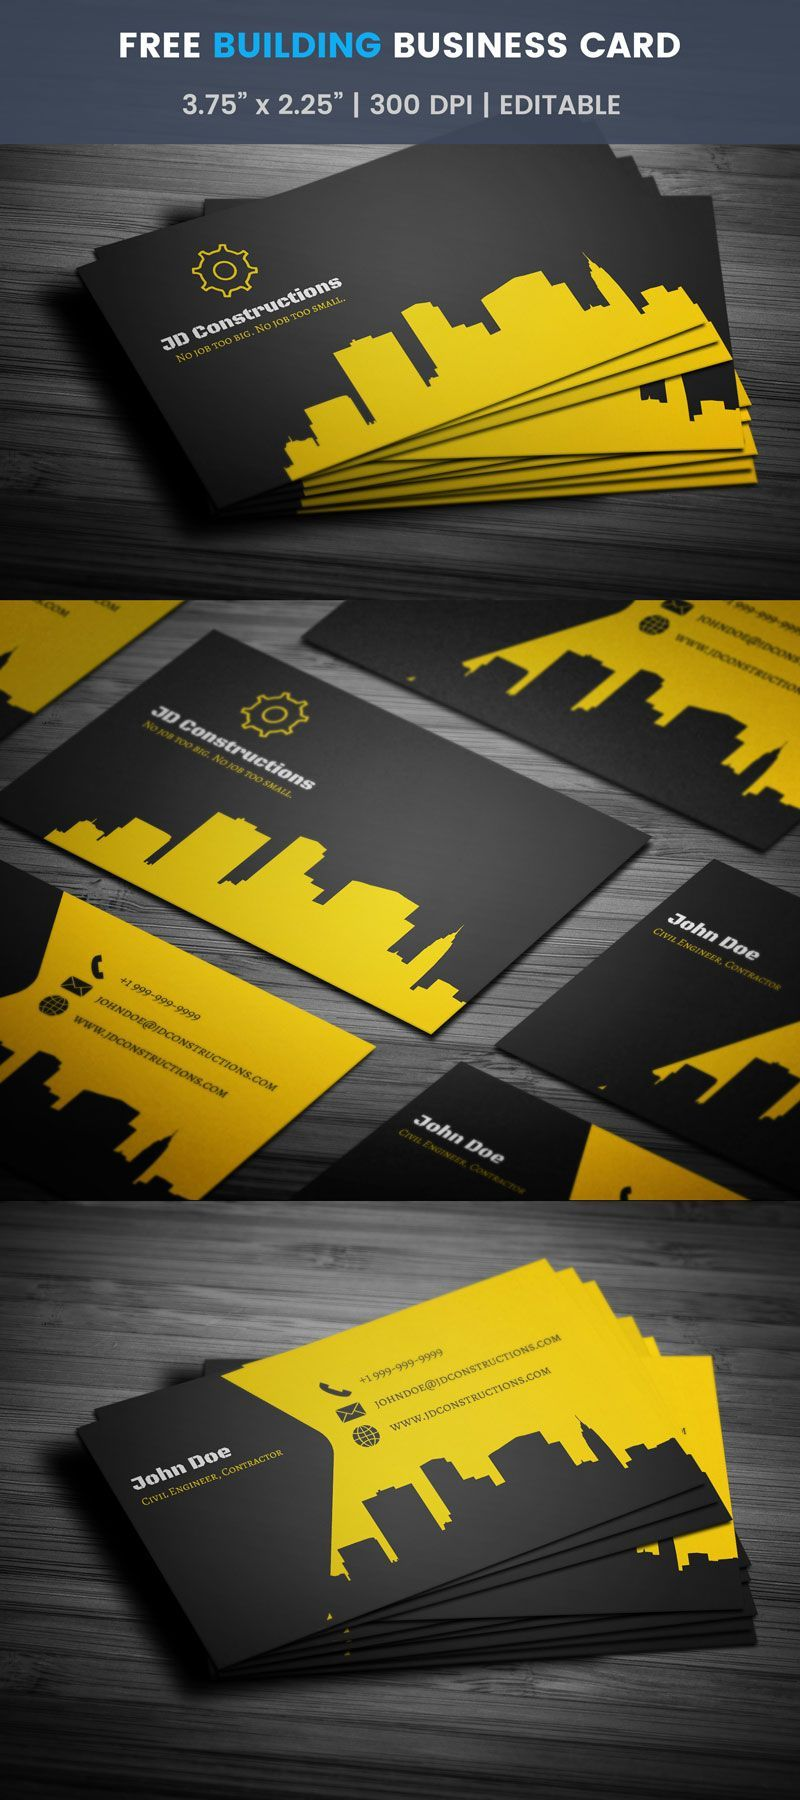 Free Construction Business Card Template Word Visiting Within Construction Busine Company Business Cards Examples Of Business Cards Construction Business Cards